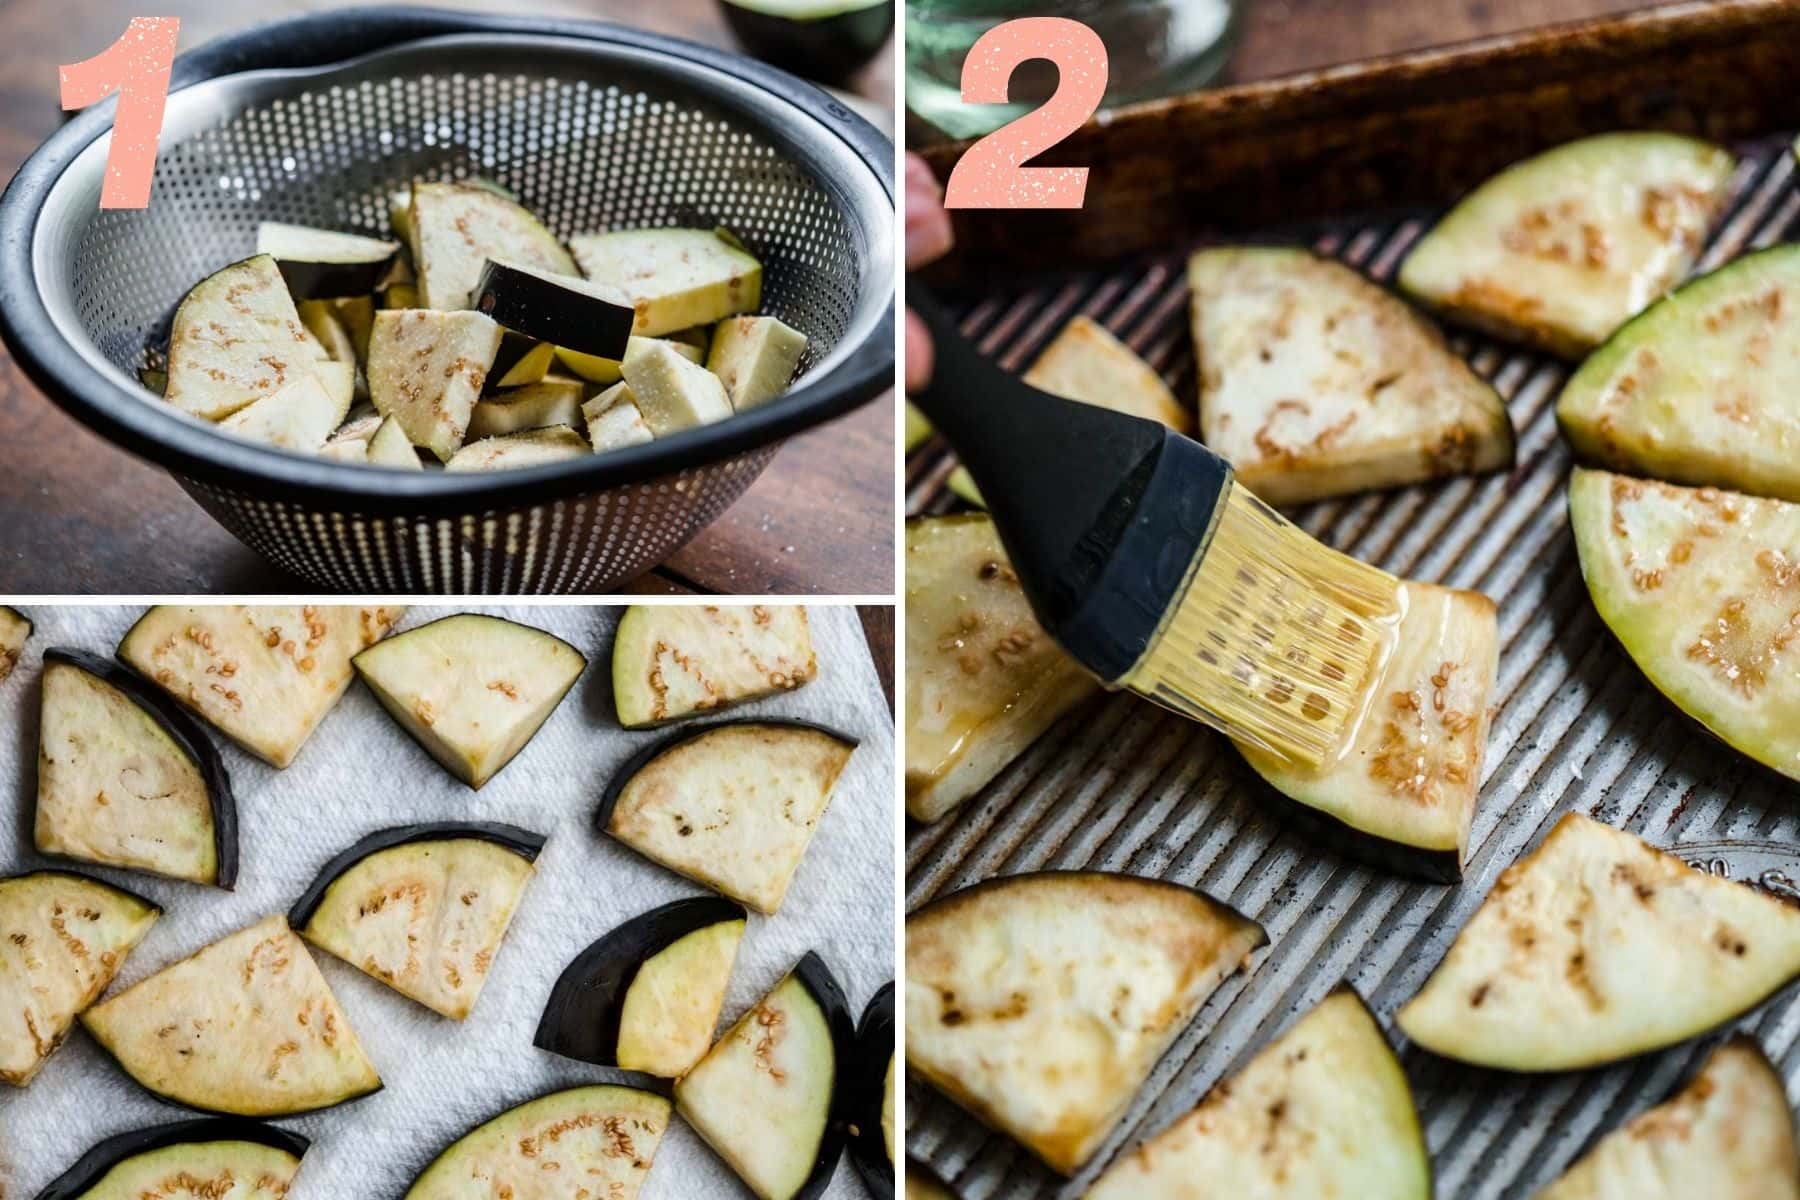 On the left: eggplant in a colander after salting. On the right: eggplant being brushed with sesame oil.